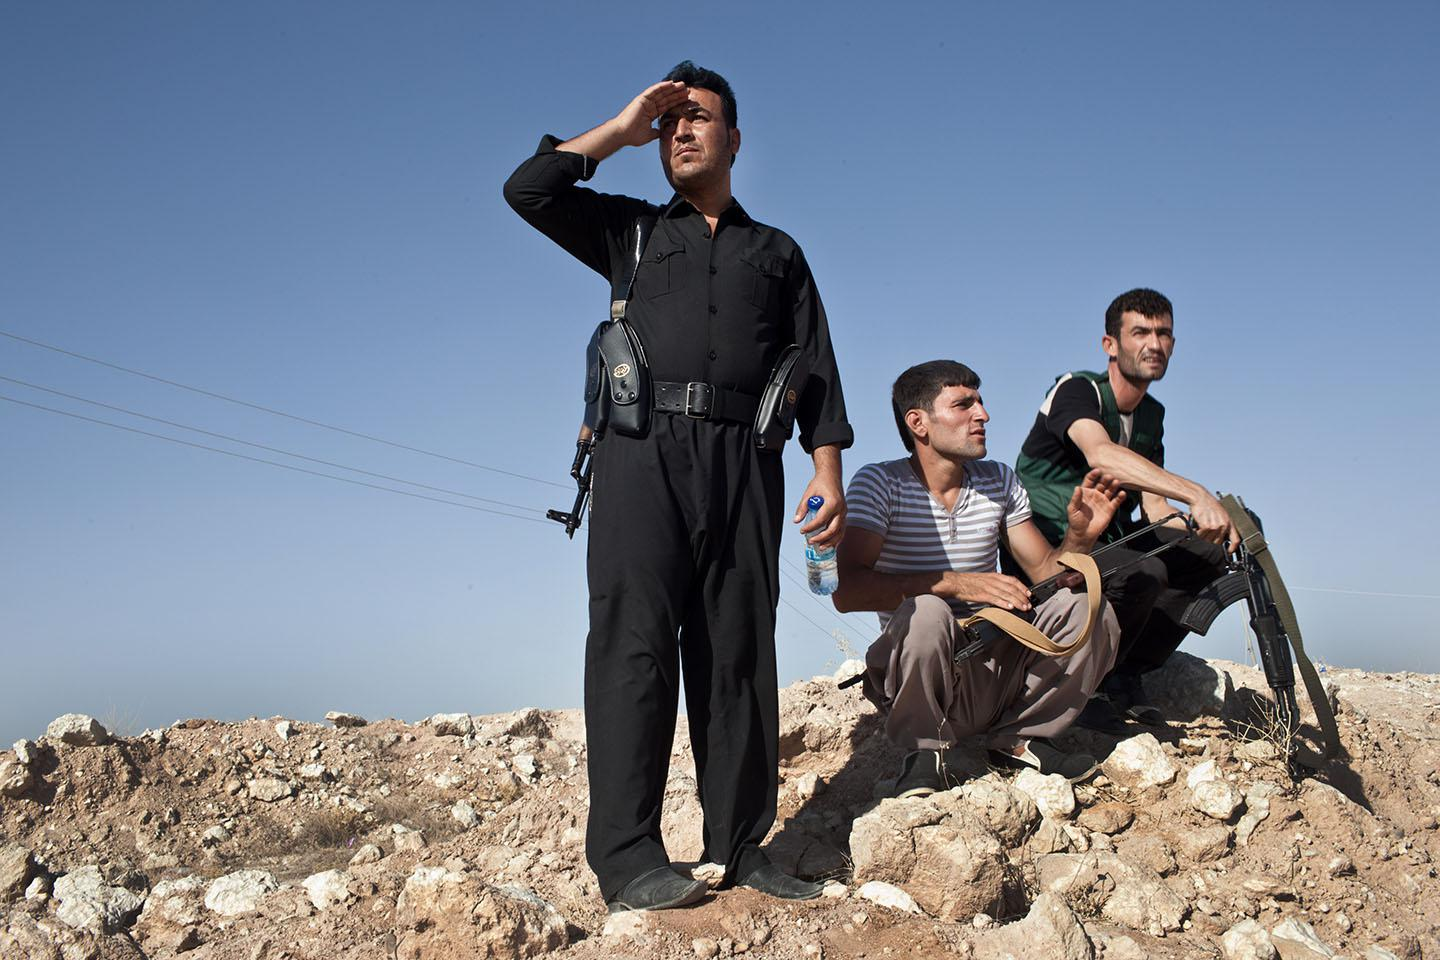 Kurdish military volunteers amass near the frontline on the outskirts of the town of Makhmor, 35 miles south of Irbil, the capital of the Kurdish Region of Iraq (KRI), on August 9, 2014.